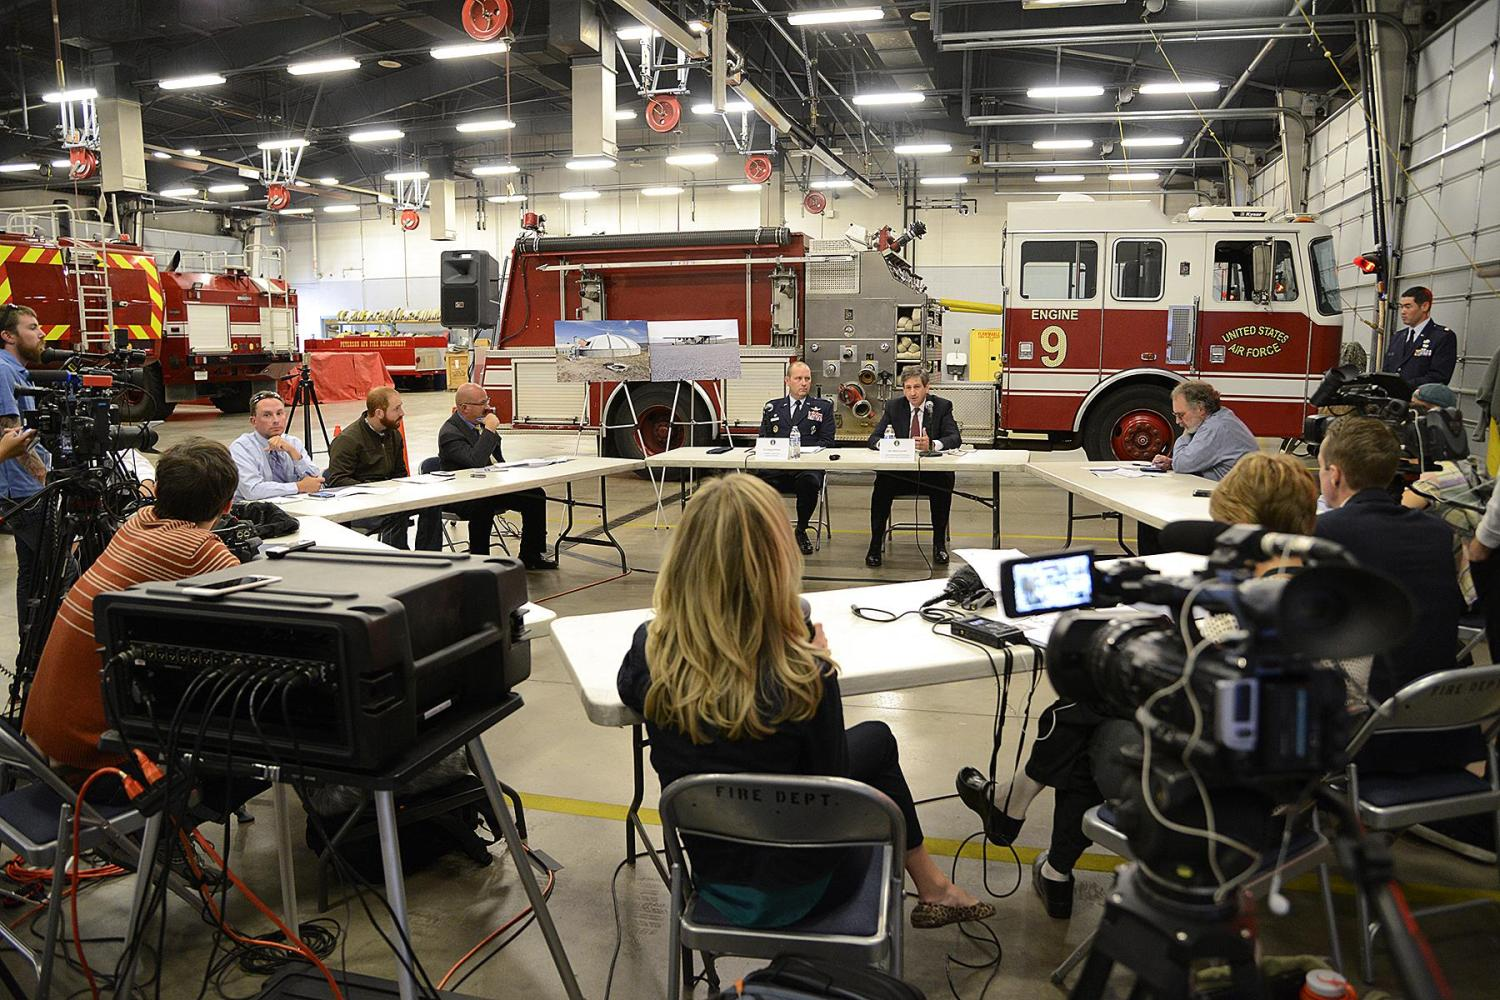 Air Force officials answer questions from local media at Fire Station One during a roundtable at Peterson Air Force Base, Colorado, on November 2, 2016. The officials were visiting Peterson AFB to discuss perfluorinated compound contamination in the aquifer that Fountain, Security, and Widefield use for drinking water. Photo by U.S. Air Force / Rob Bussard